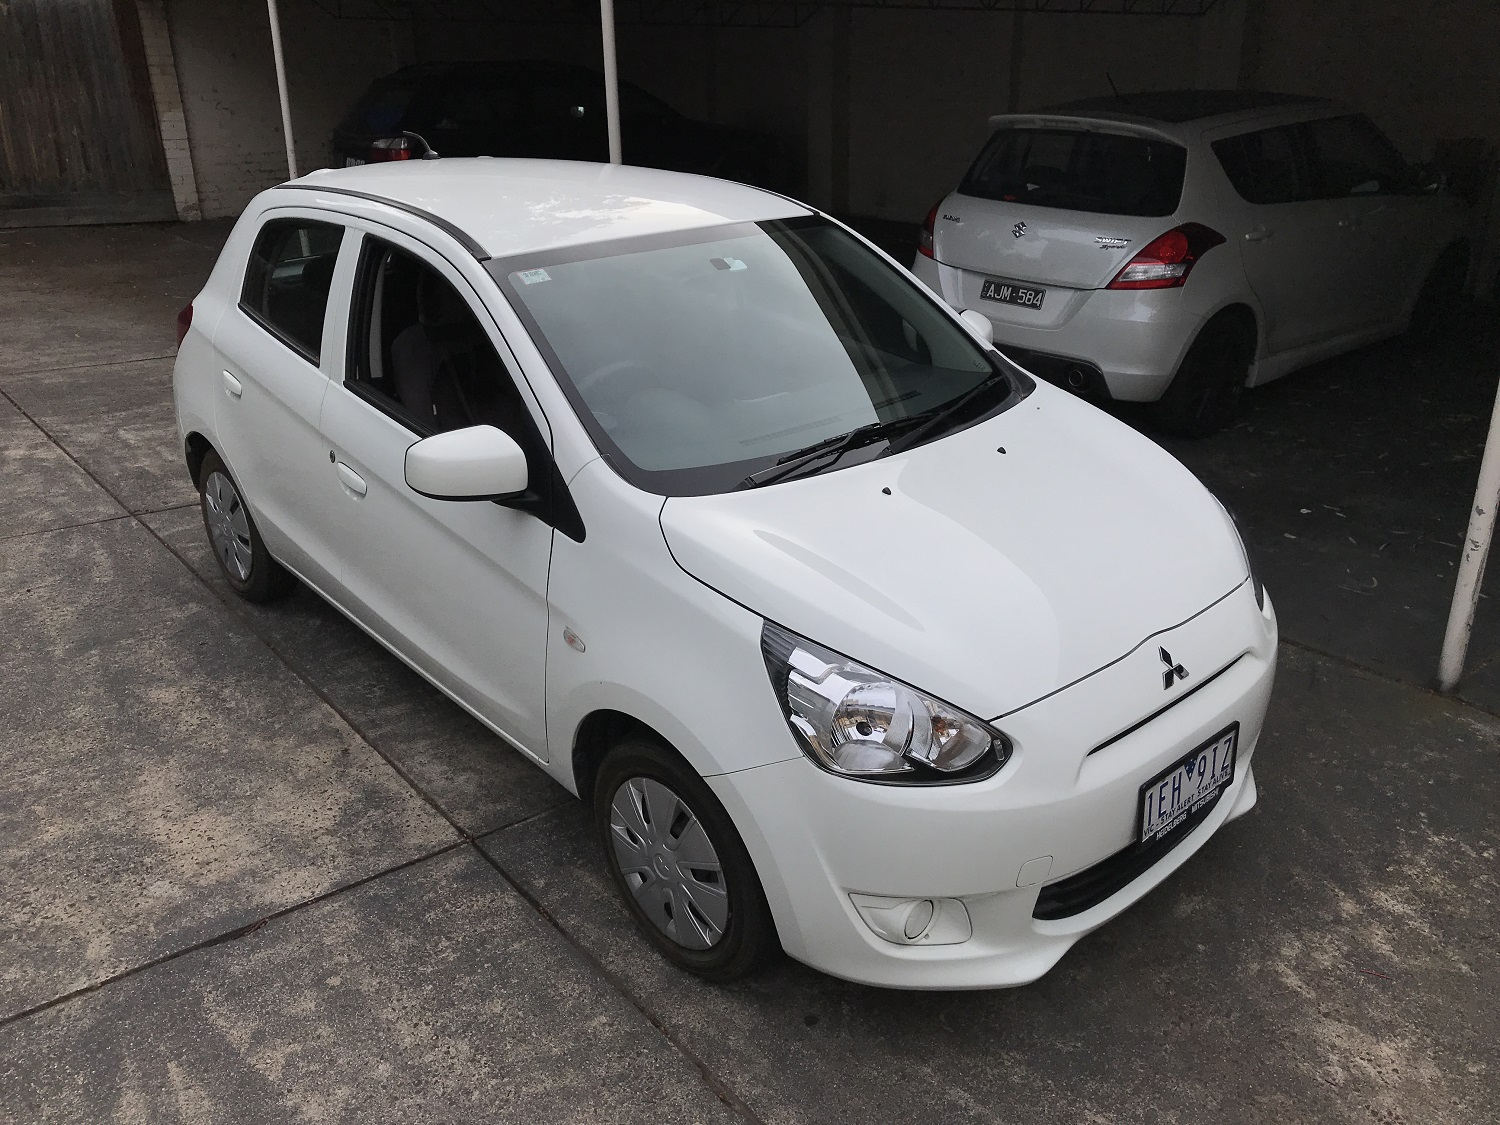 Picture of Kerry's 2015 Mitsubishi Mirage